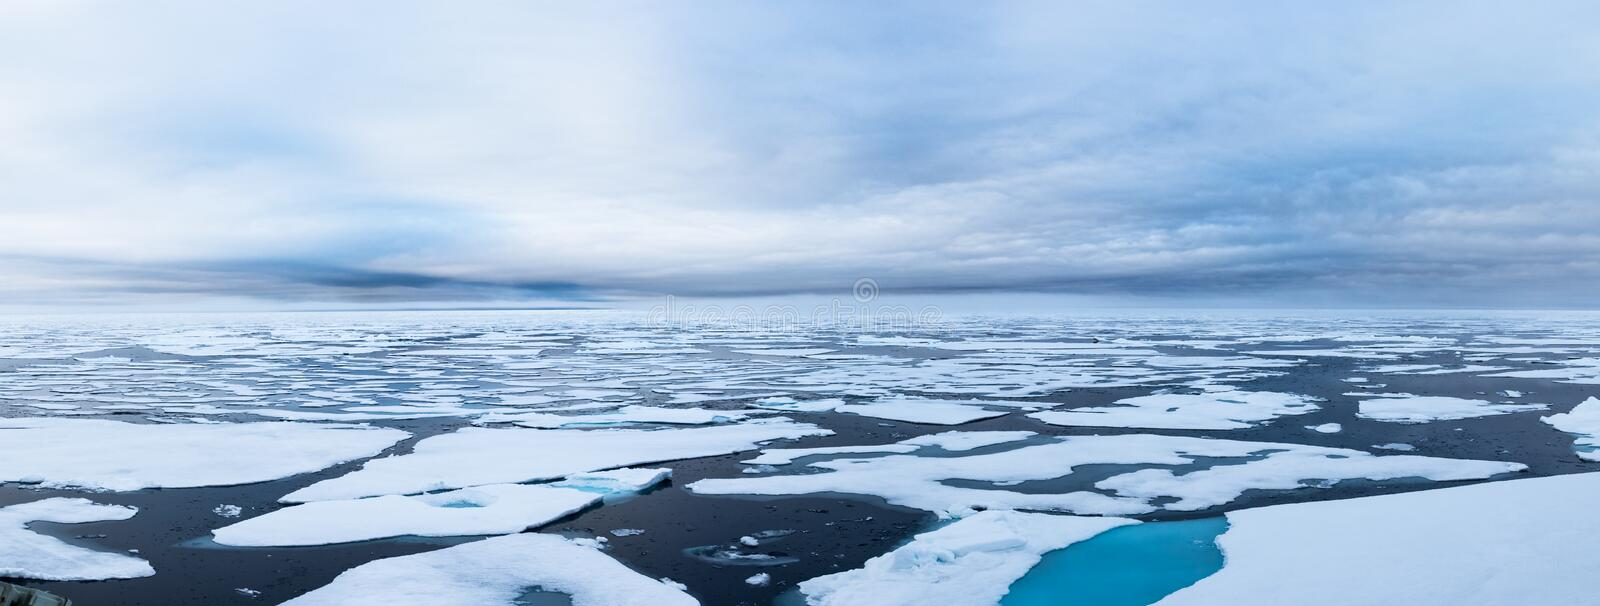 Ice edge at 82 41.01 degrees North from Svalbard. Panorama of the North Ice Edge at 82 41.01 degrees North from Svalbard, Arctic Ocean, Norway royalty free stock photography